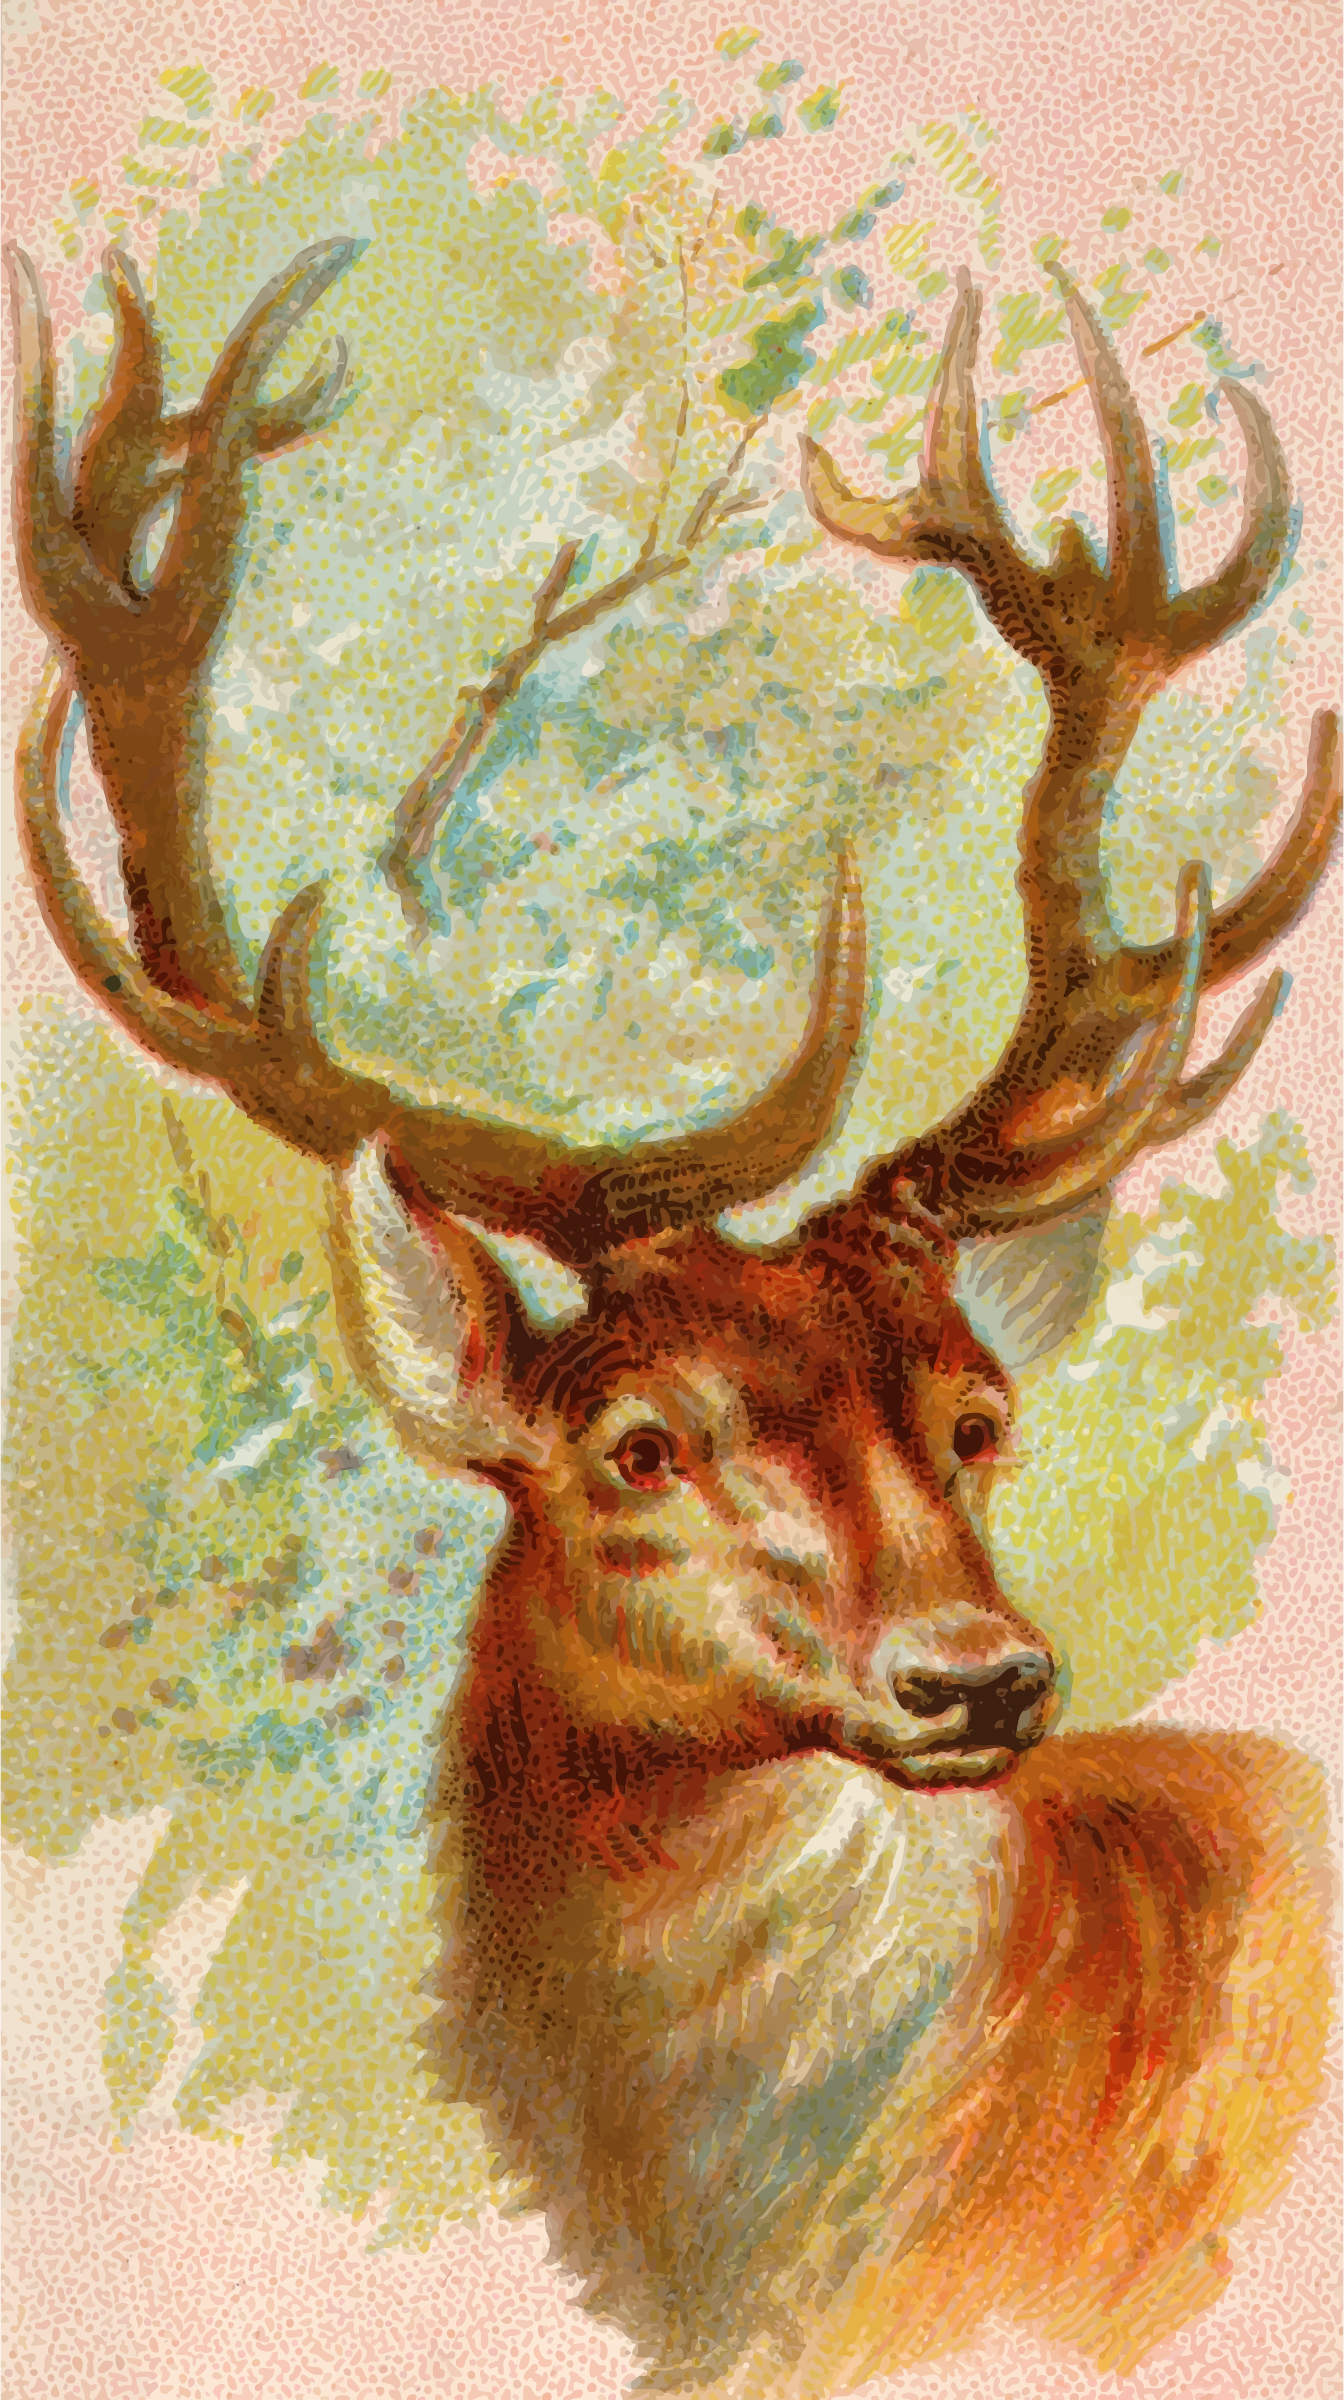 Cigarette card - Stag by Firkin